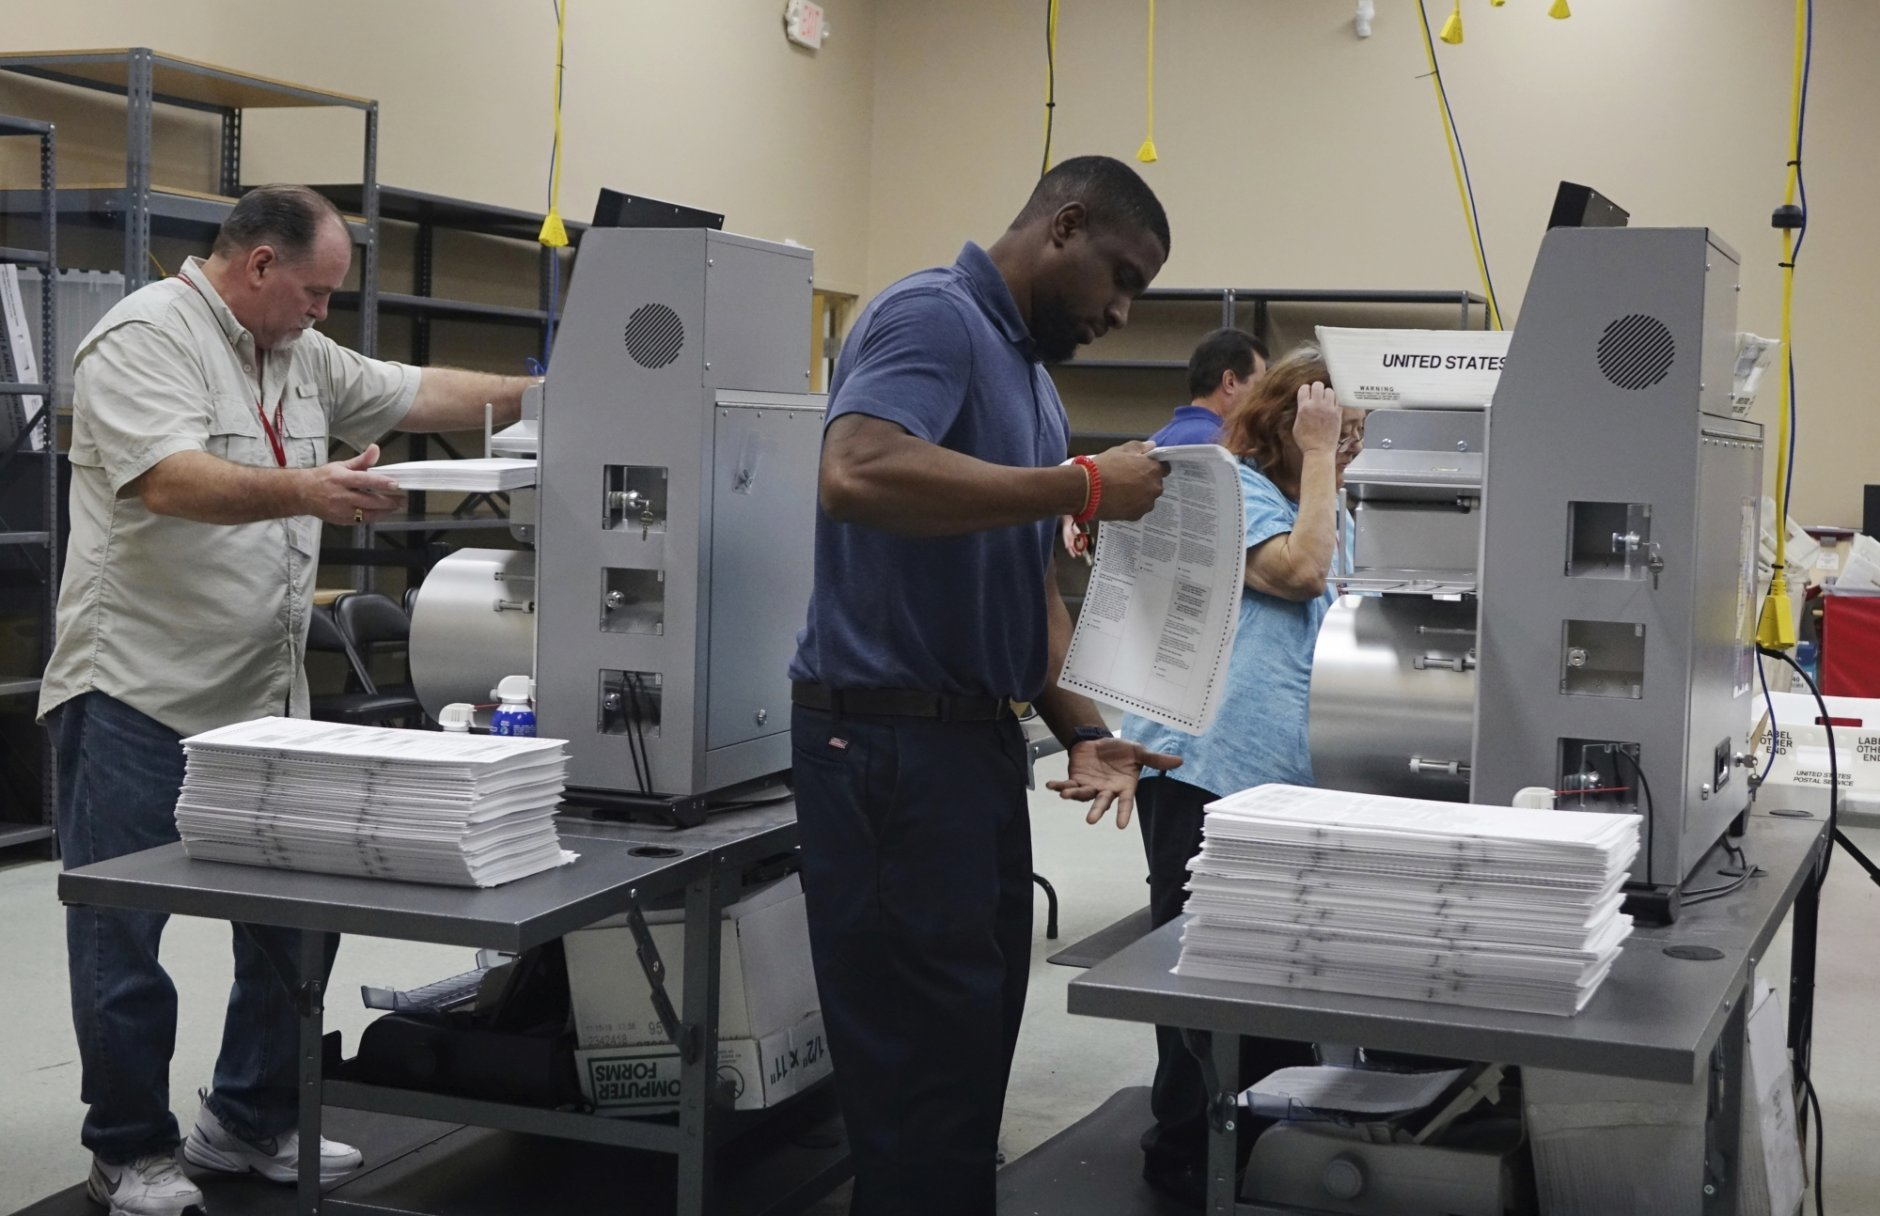 Election workers place ballots into electronic counting machines, Sunday, Nov. 11, 2018, at the Broward Supervisor of Elections office in Lauderhill, Fla. The Florida recount began Sunday morning in Broward County. (Joe Cavaretta /South Florida Sun-Sentinel via AP)